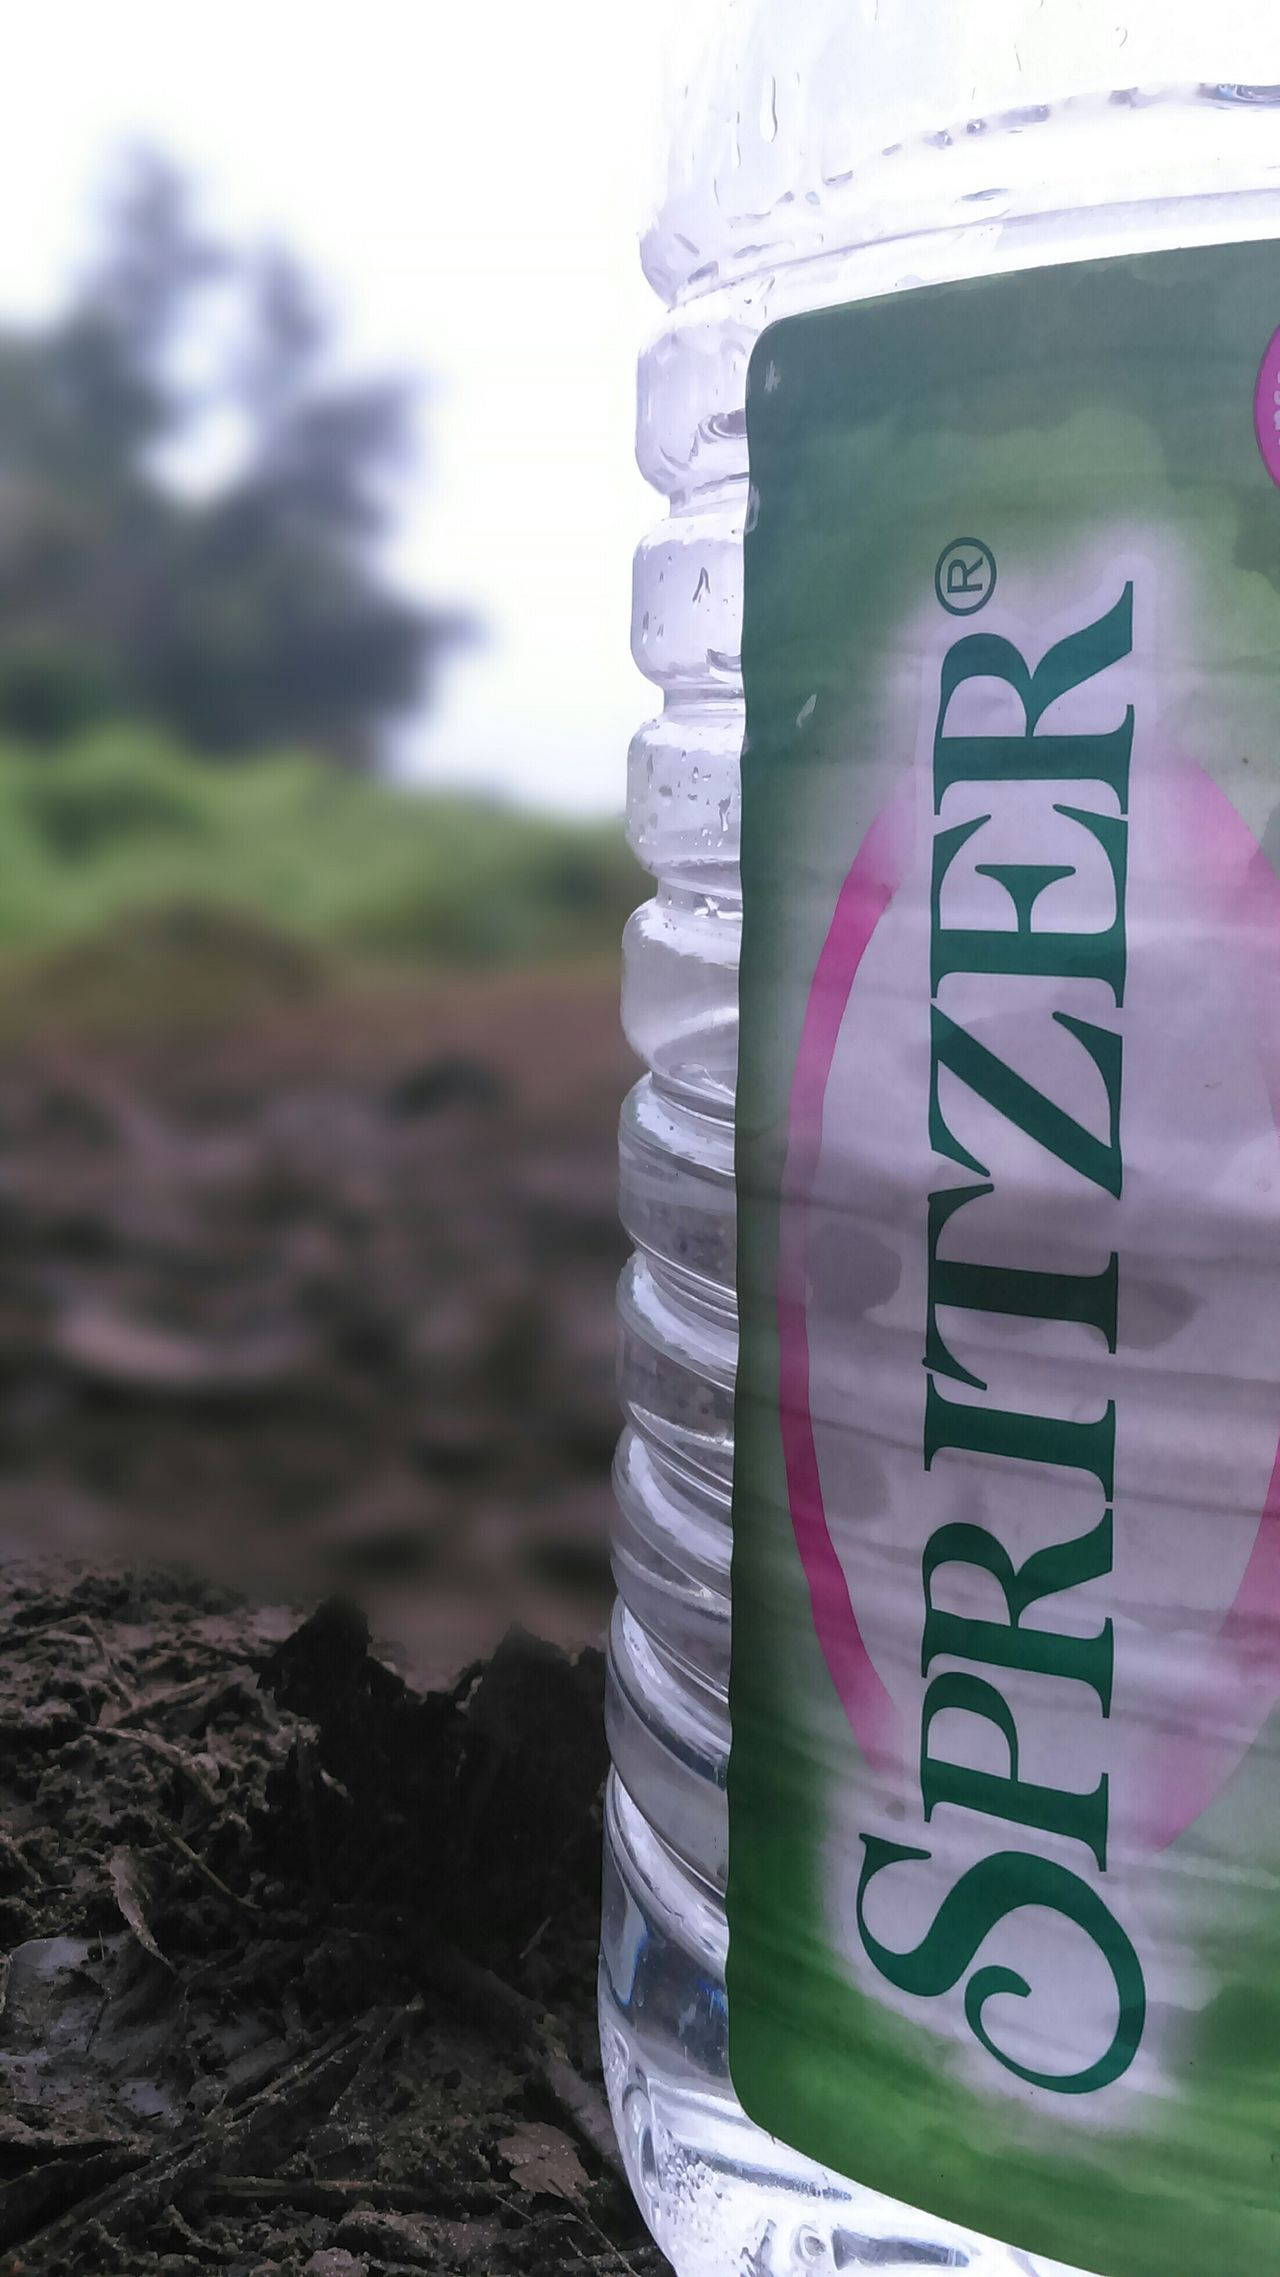 First time using background defocus. Nofilter#noedit Check This Out Howdoyoufeel its rite how i using banckground defocus?